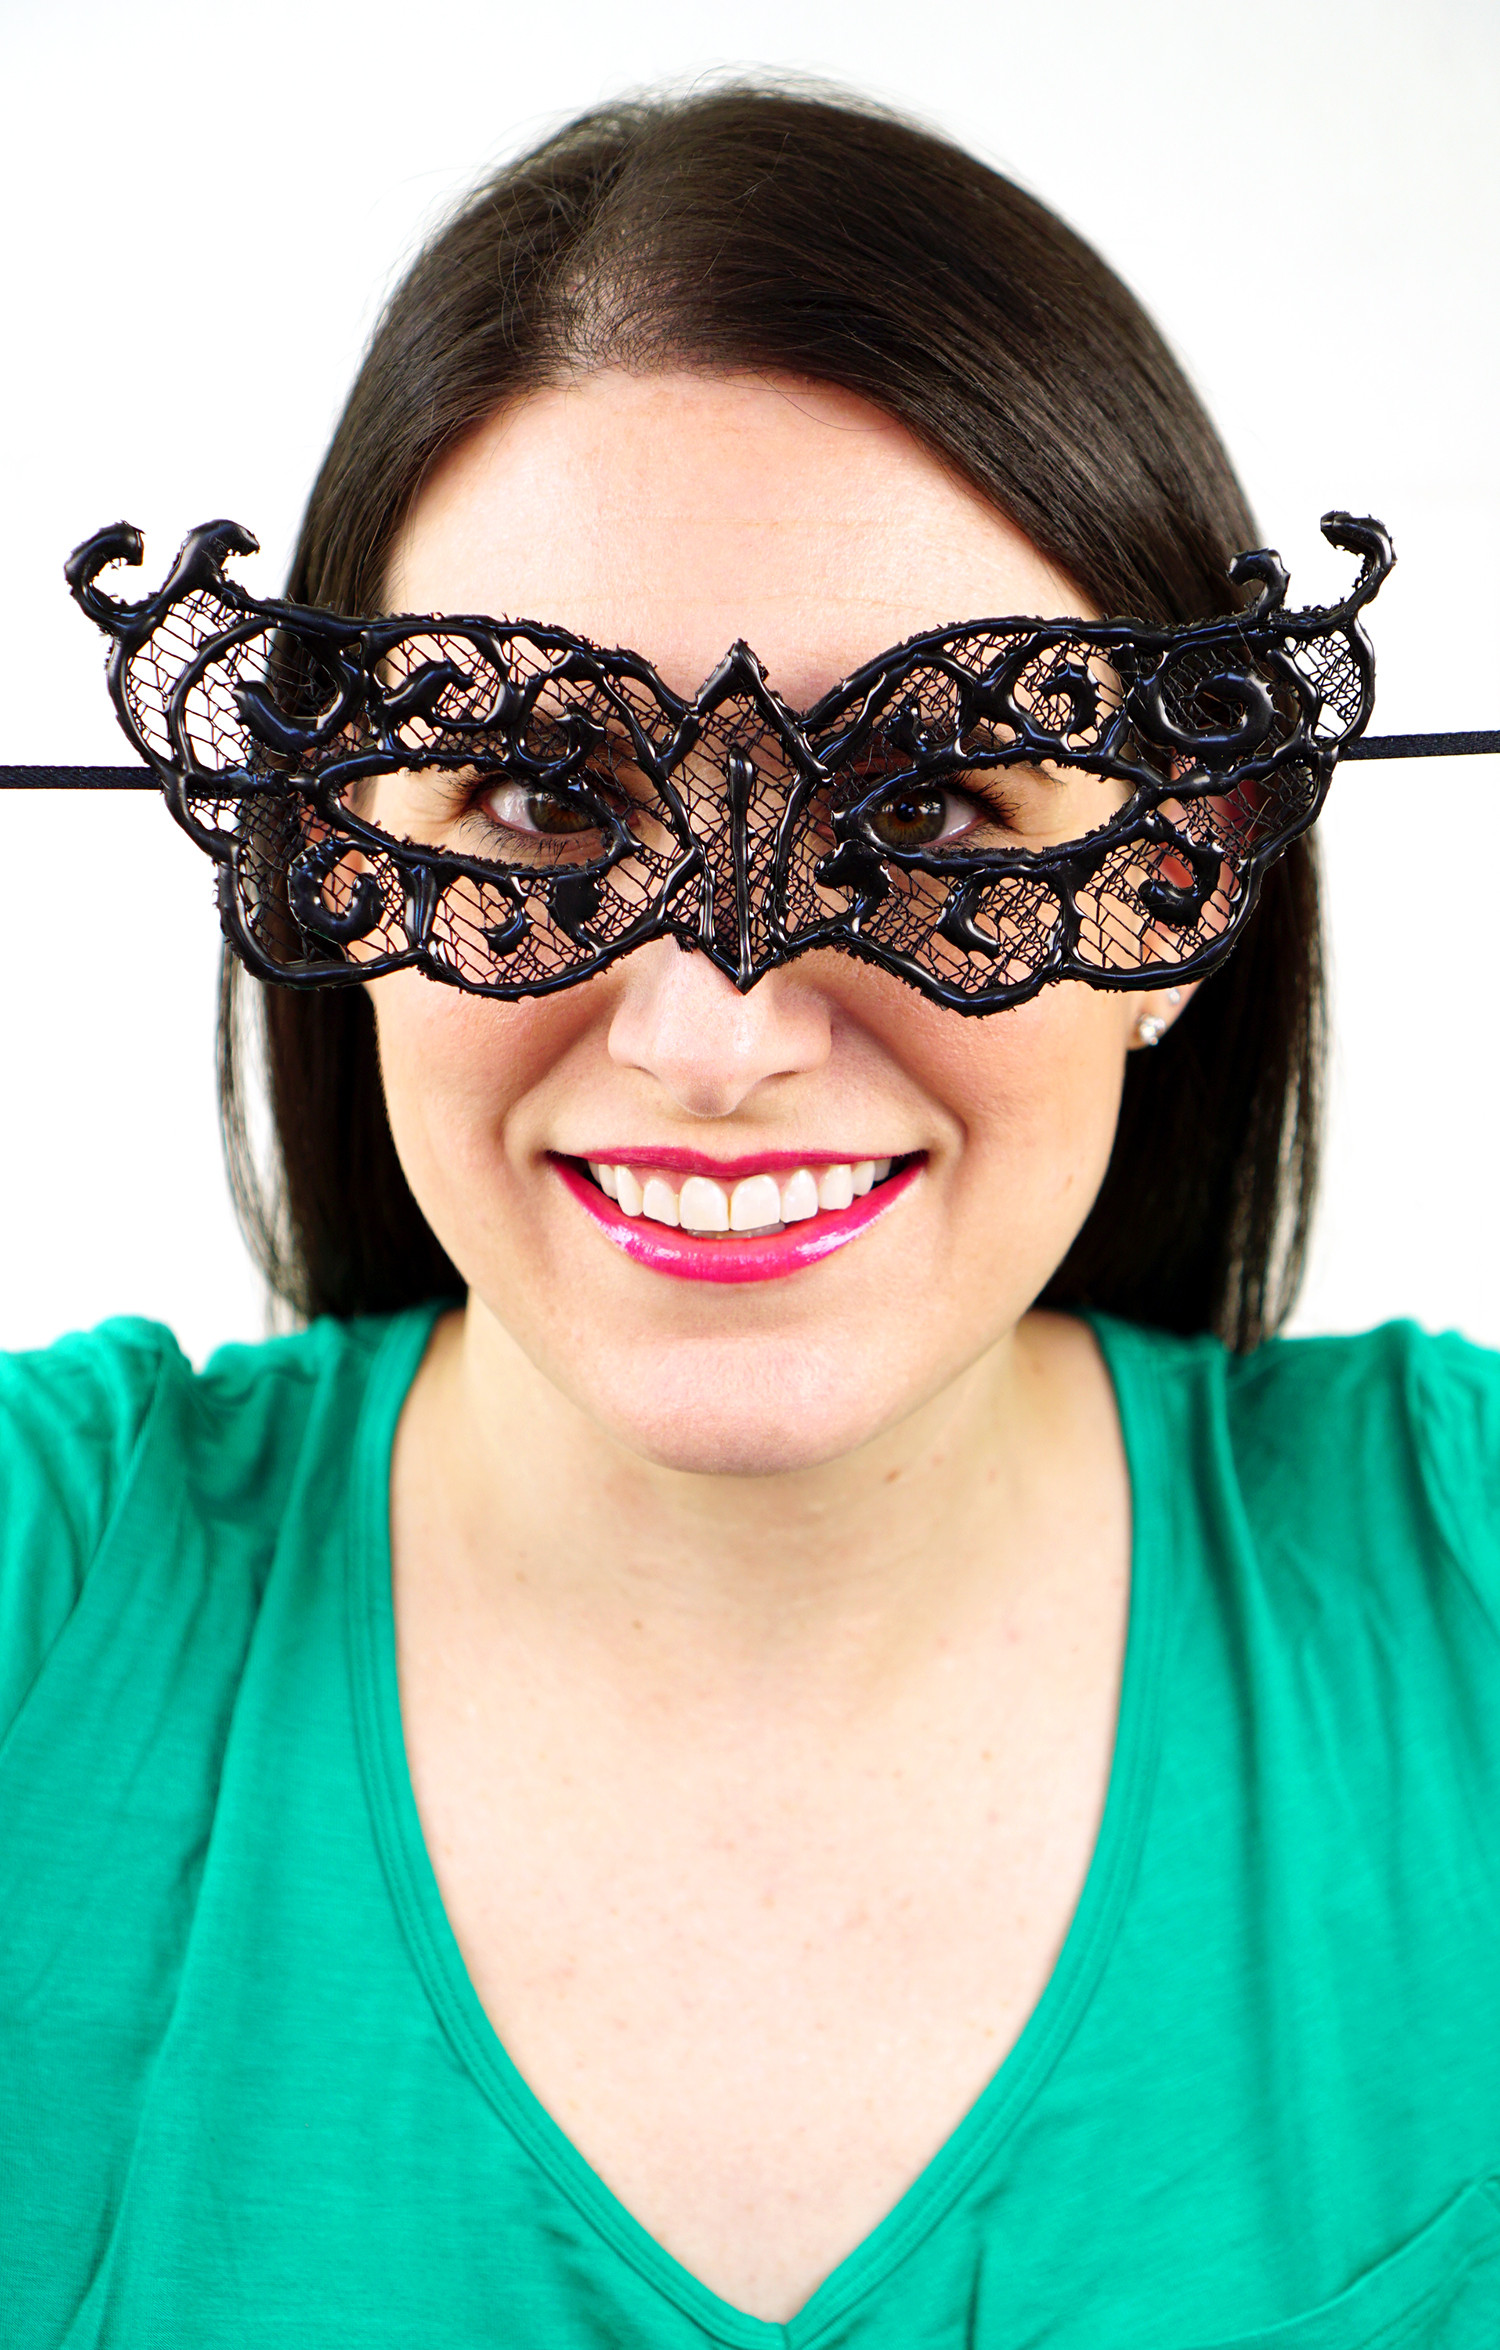 Best ideas about DIY Lace Mask . Save or Pin Easy DIY Lace Masquerade Mask from Hot Glue Happiness is Now.